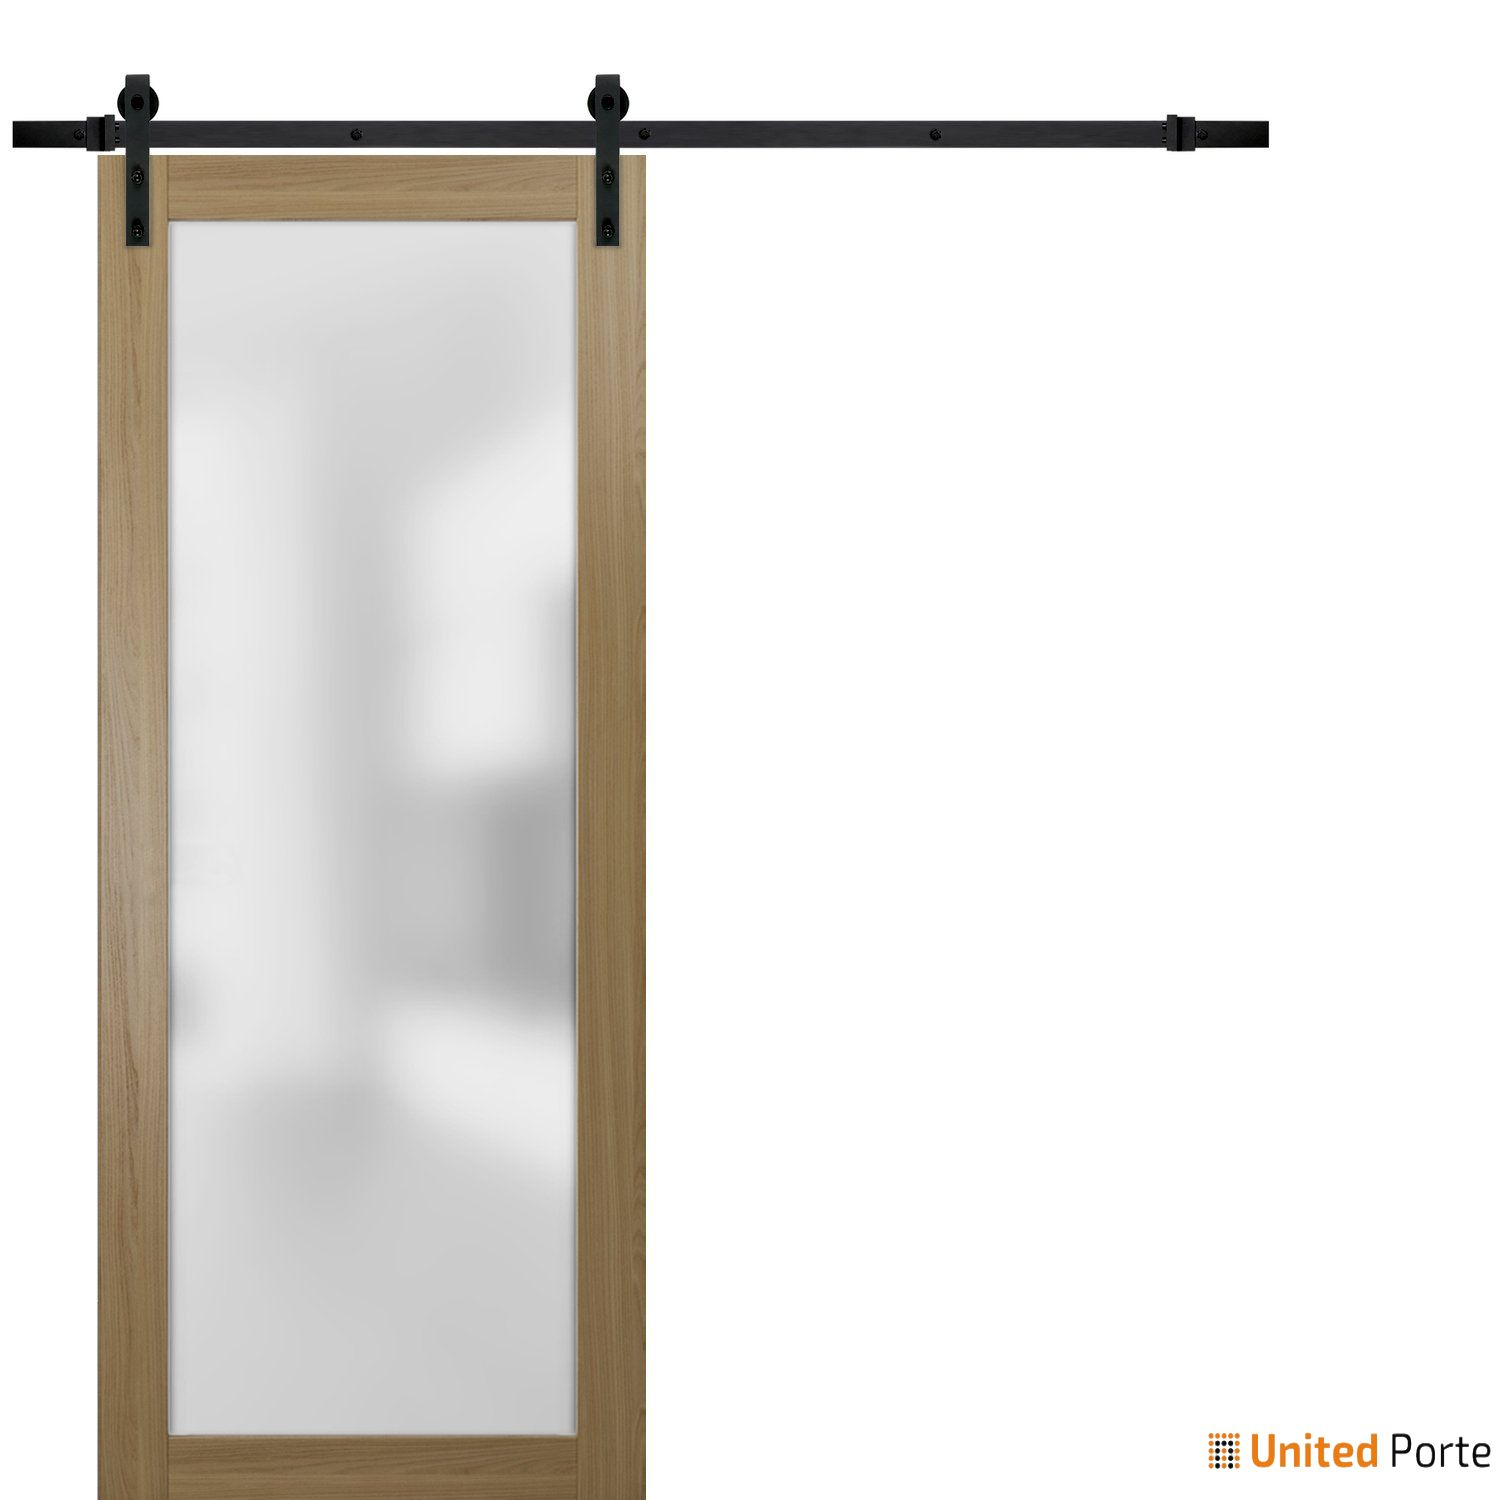 Planum 2102 Honey Ash Sturdy Barn Door Frosted Tempered Glass with Black Hardware | Modern Solid Panel Interior Barn Doors